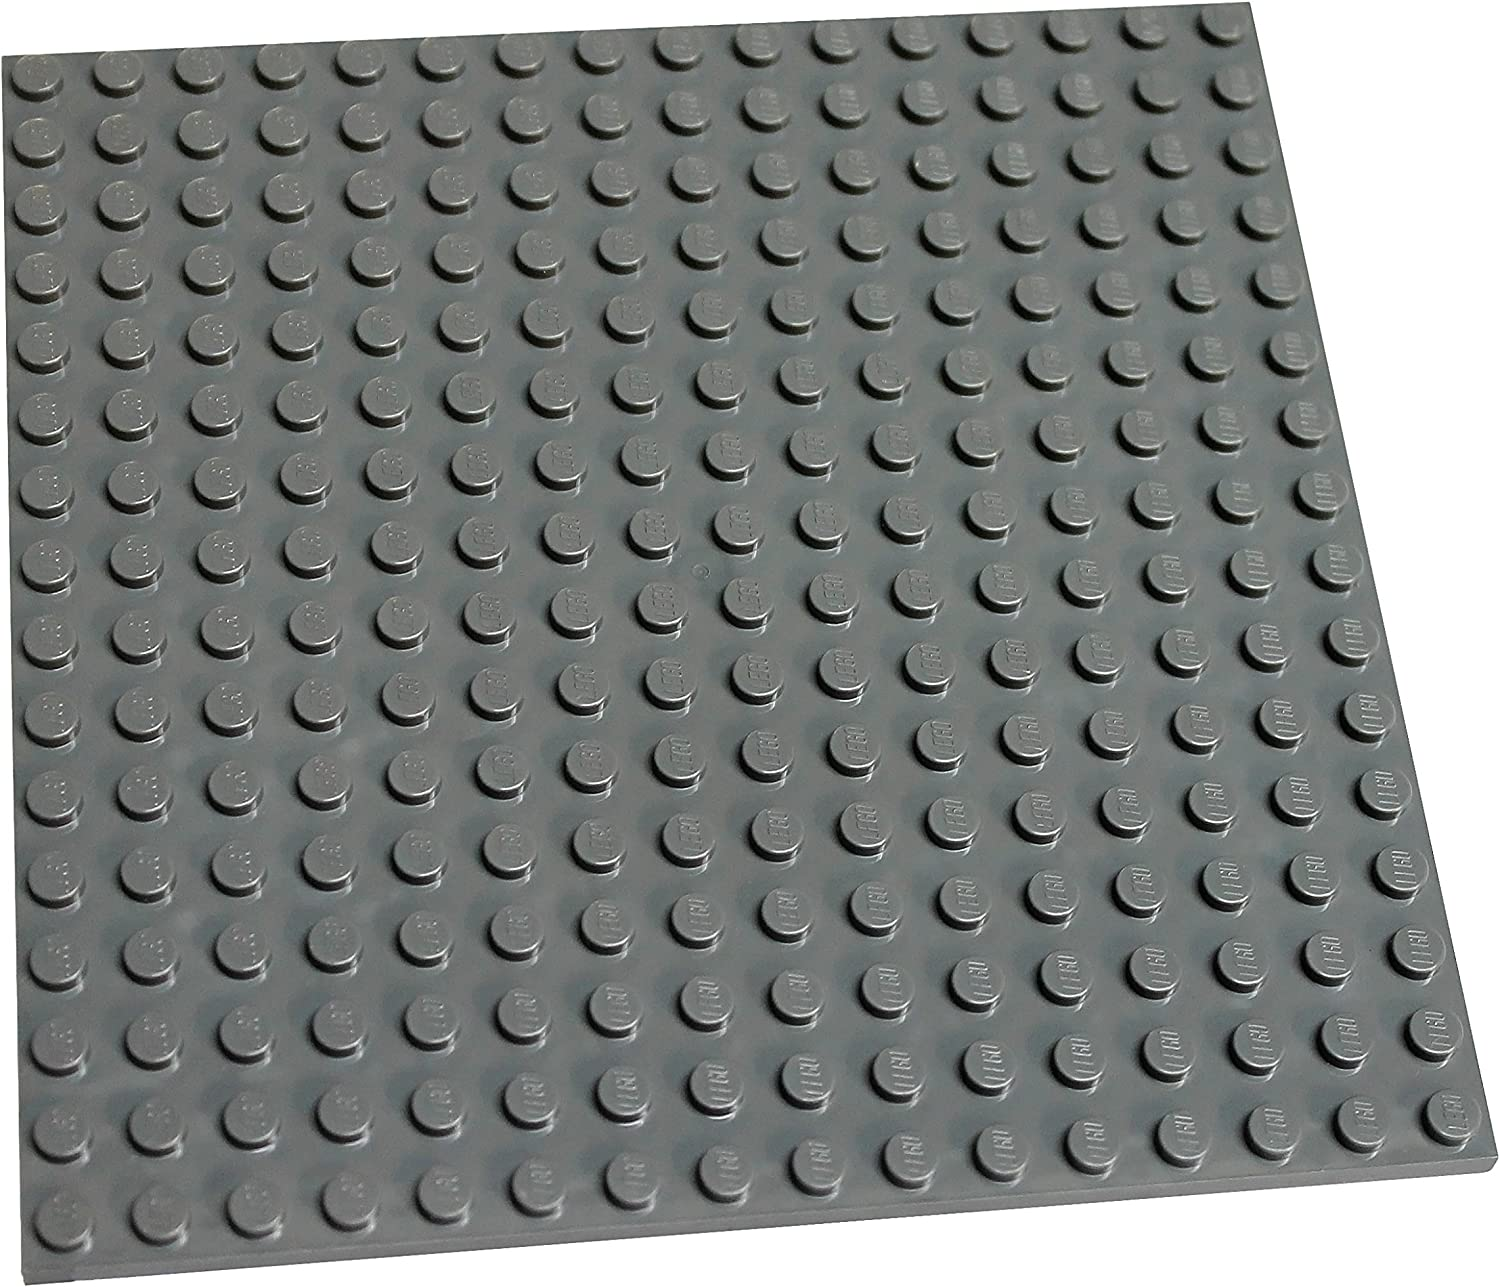 "LEGO Parts and Pieces: Dark Gray (Dark Stone Grey) 16x16 (4.8""x4.8"") Plate x1"